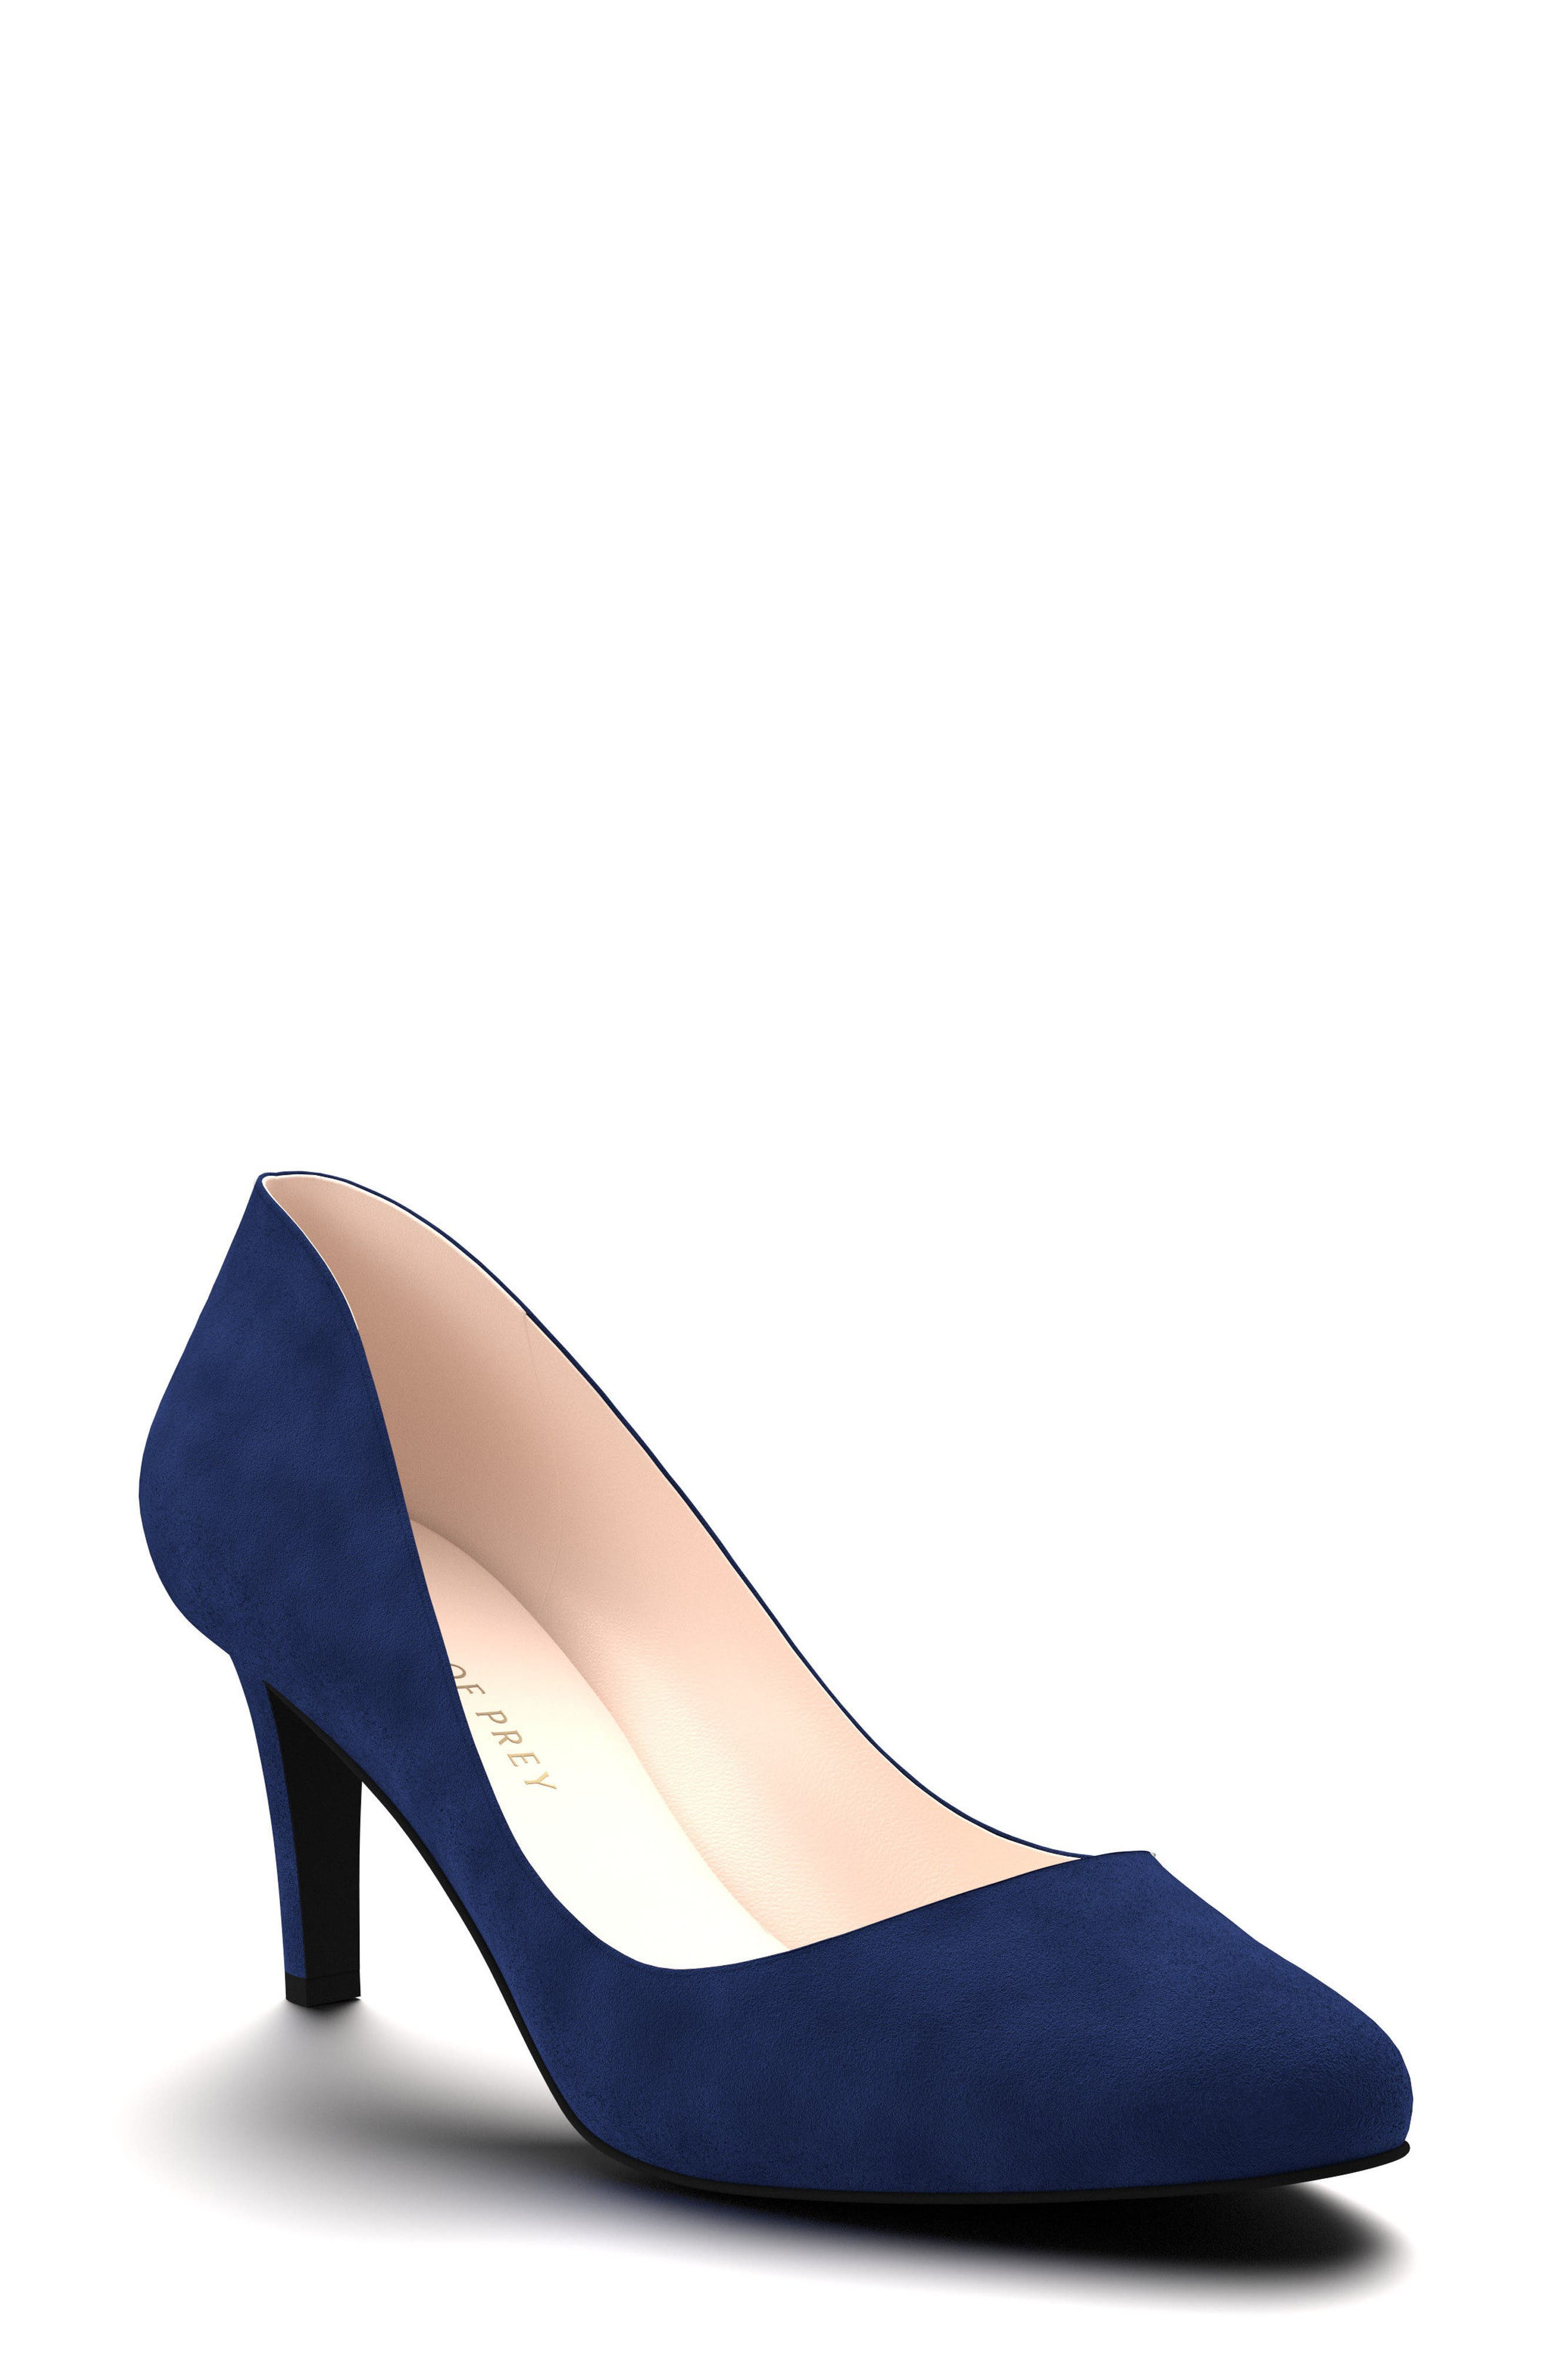 Main Image - Shoes of Prey Round Toe Pump (Women)